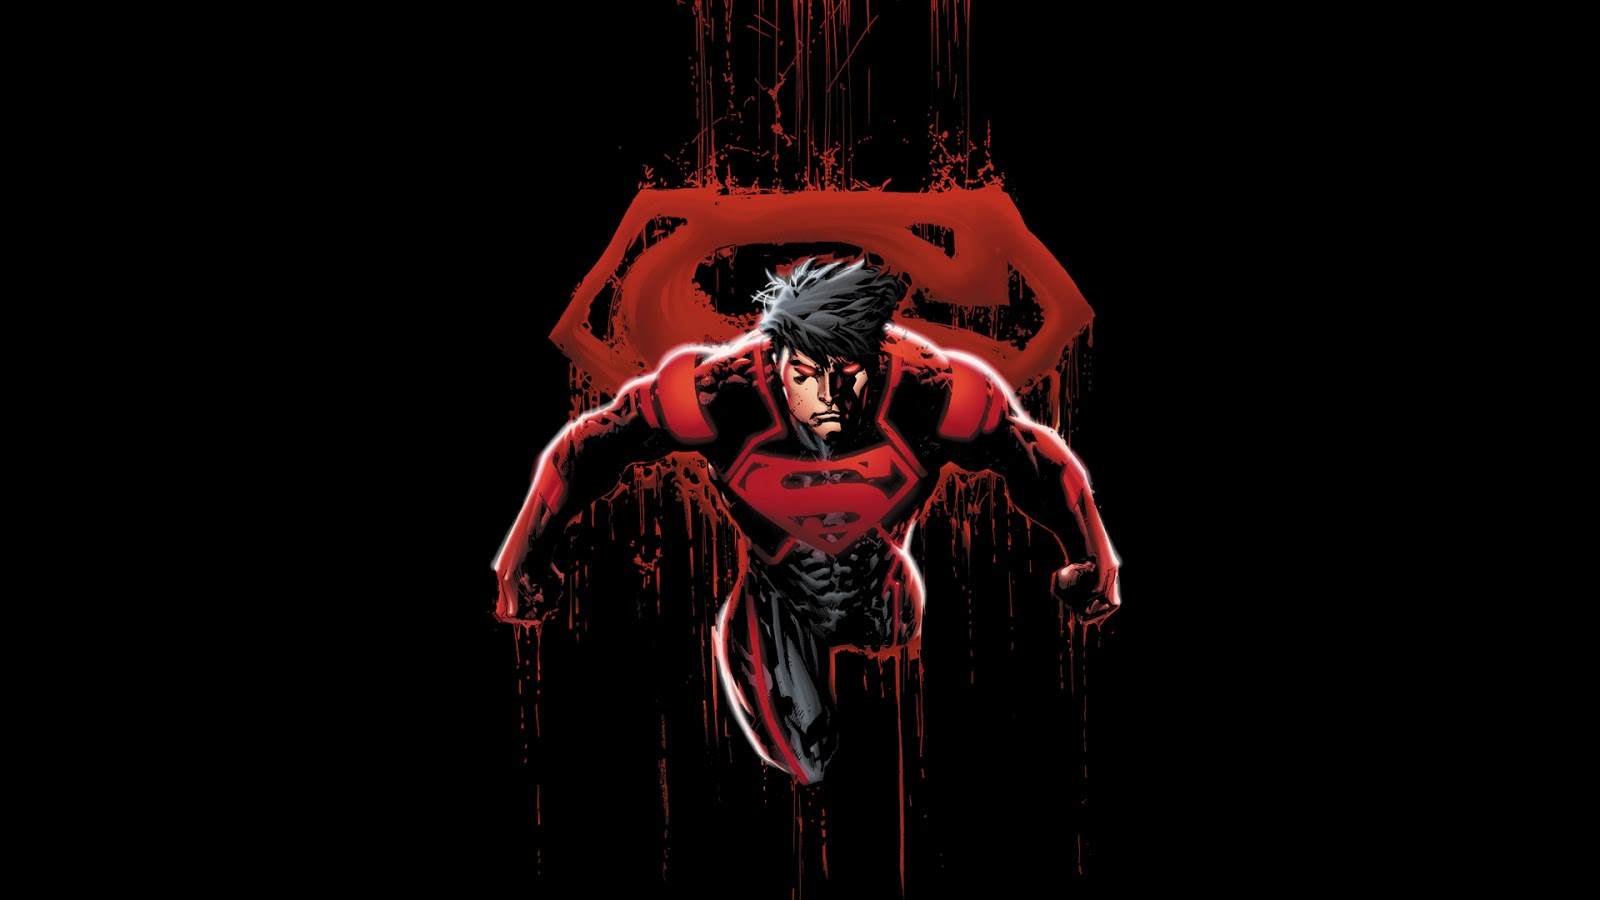 Batman New 52 Wallpaper Hd First is a new 52 superboy 1600x900